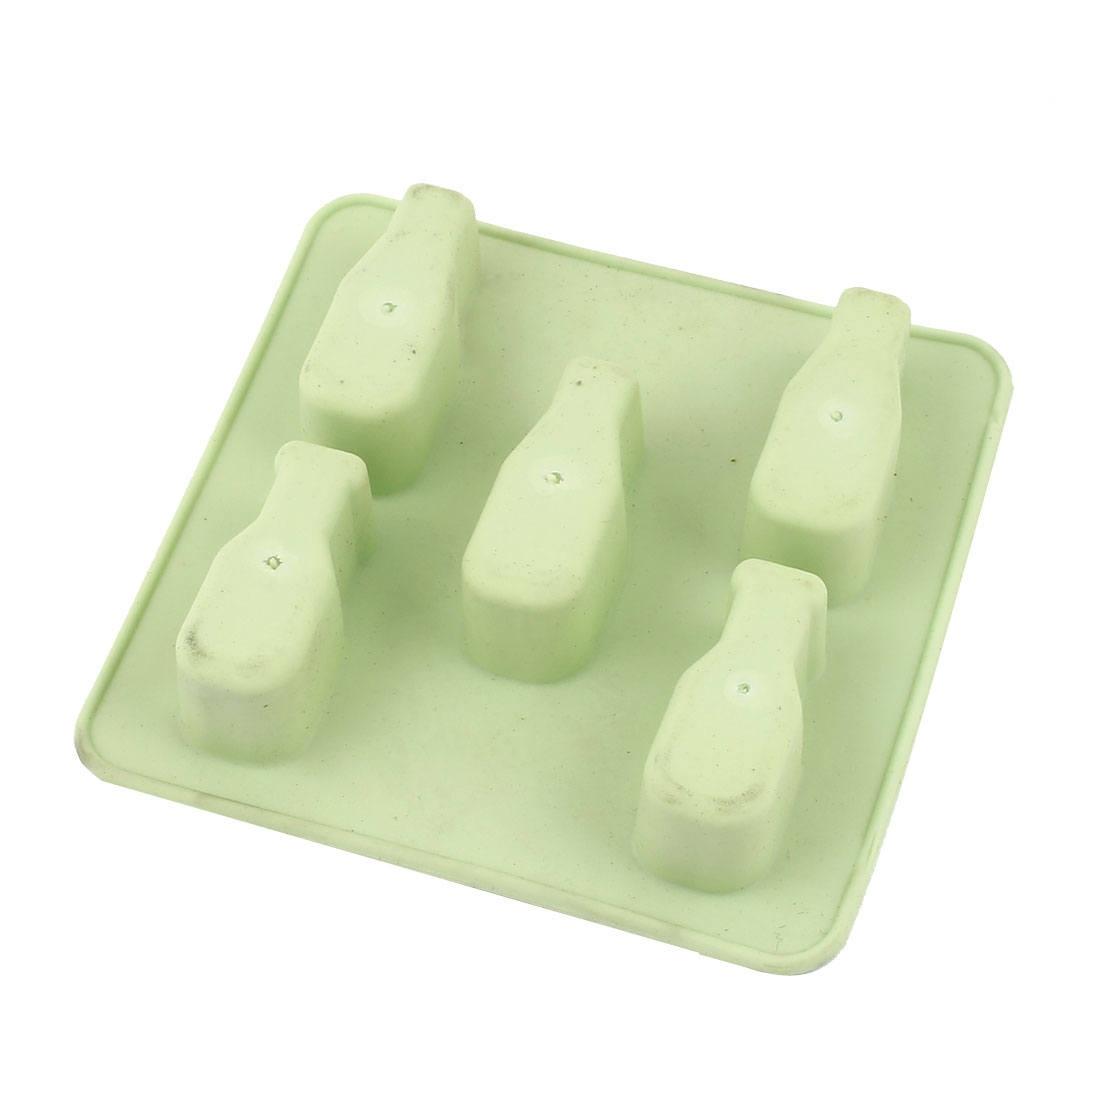 Household 5 Slots Rubber Square Mould Tray Ice Cube Mold Dodger Green